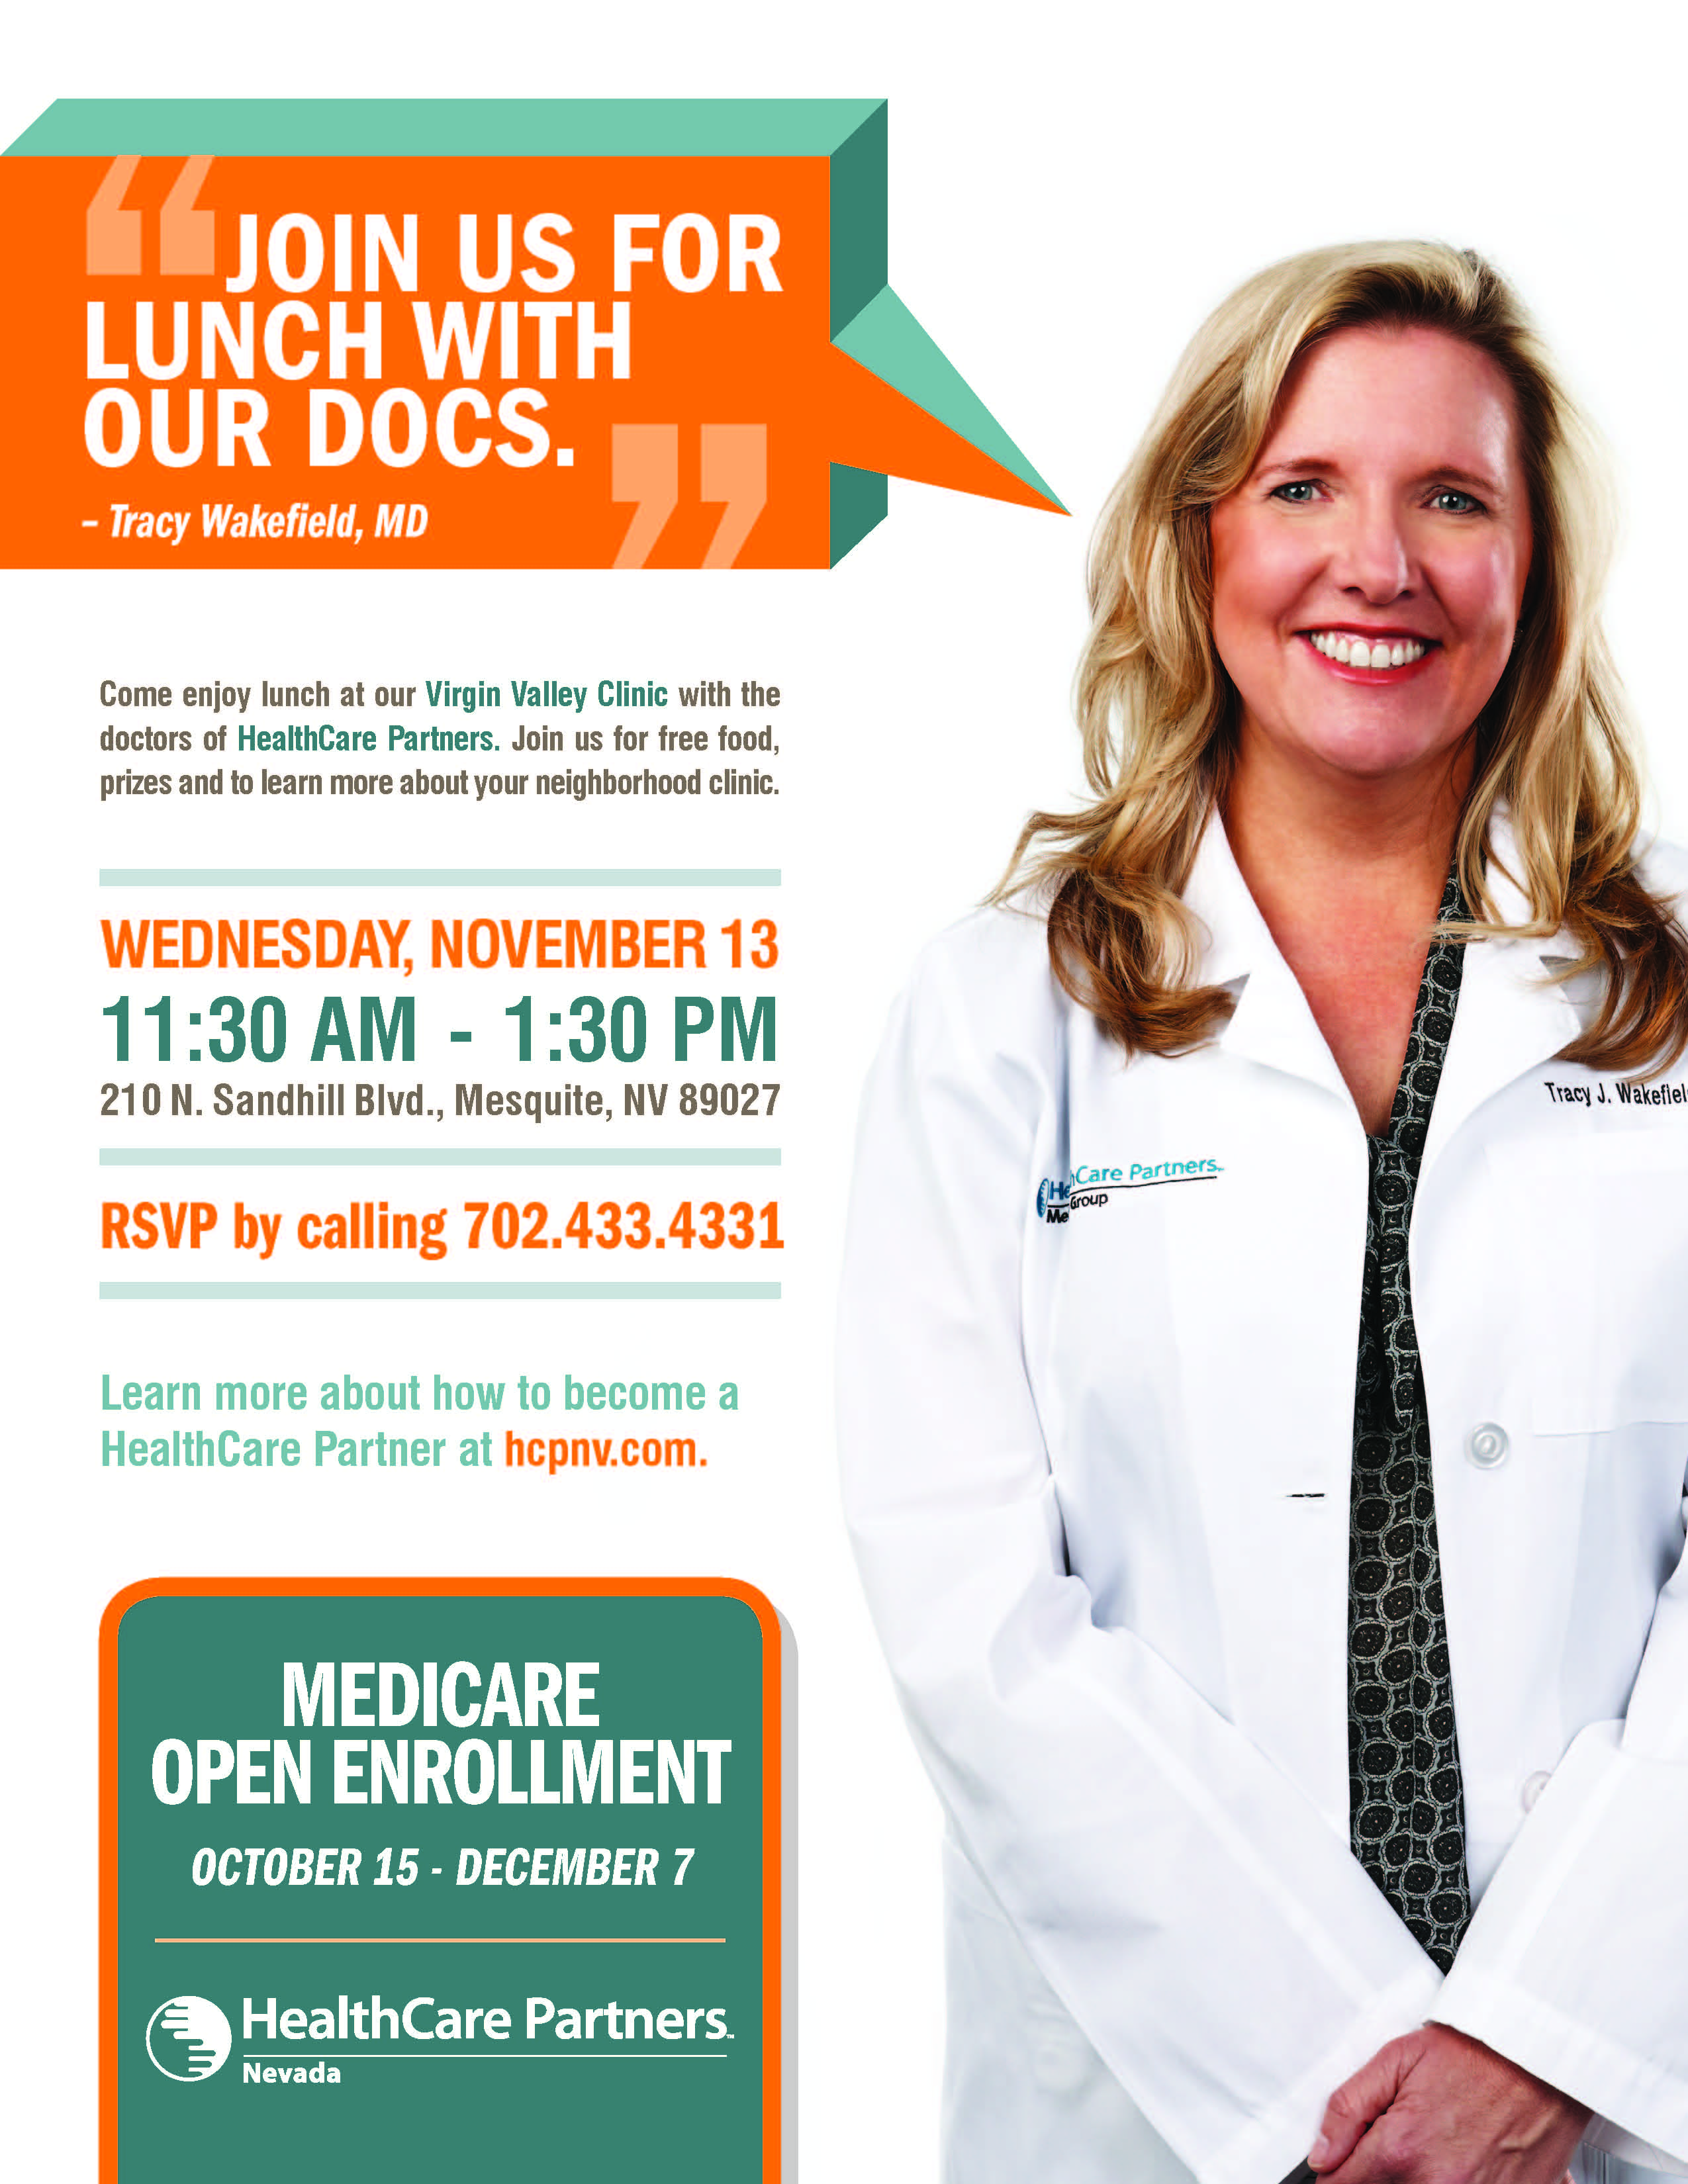 Healthcare Partners open house and Medicare info today